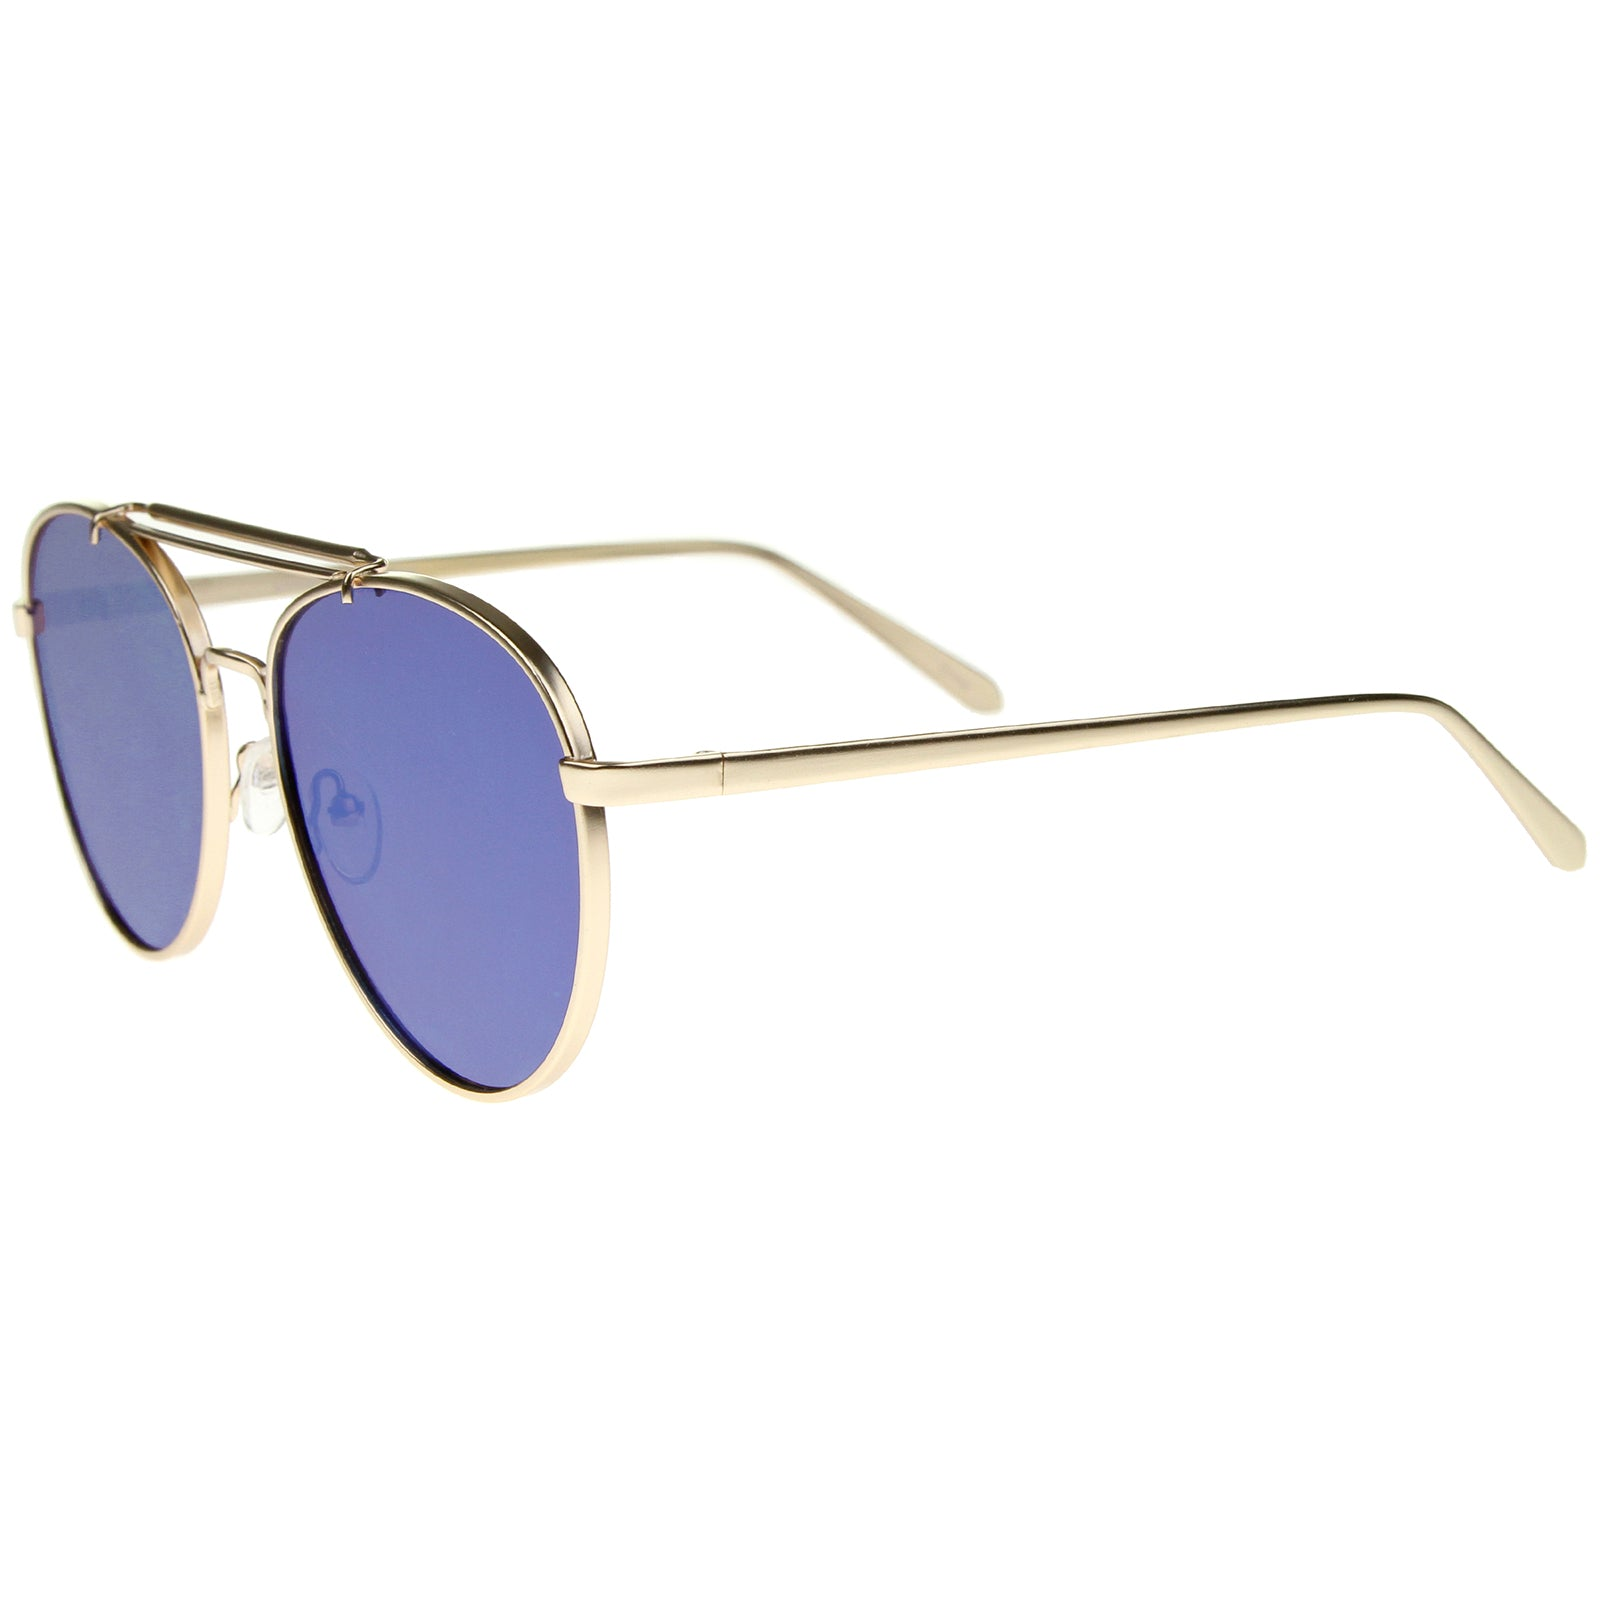 Large Metal Teardrop Double Bridge Mirrored Flat Lens Aviator Sunglasses 60mm - sunglass.la - 19